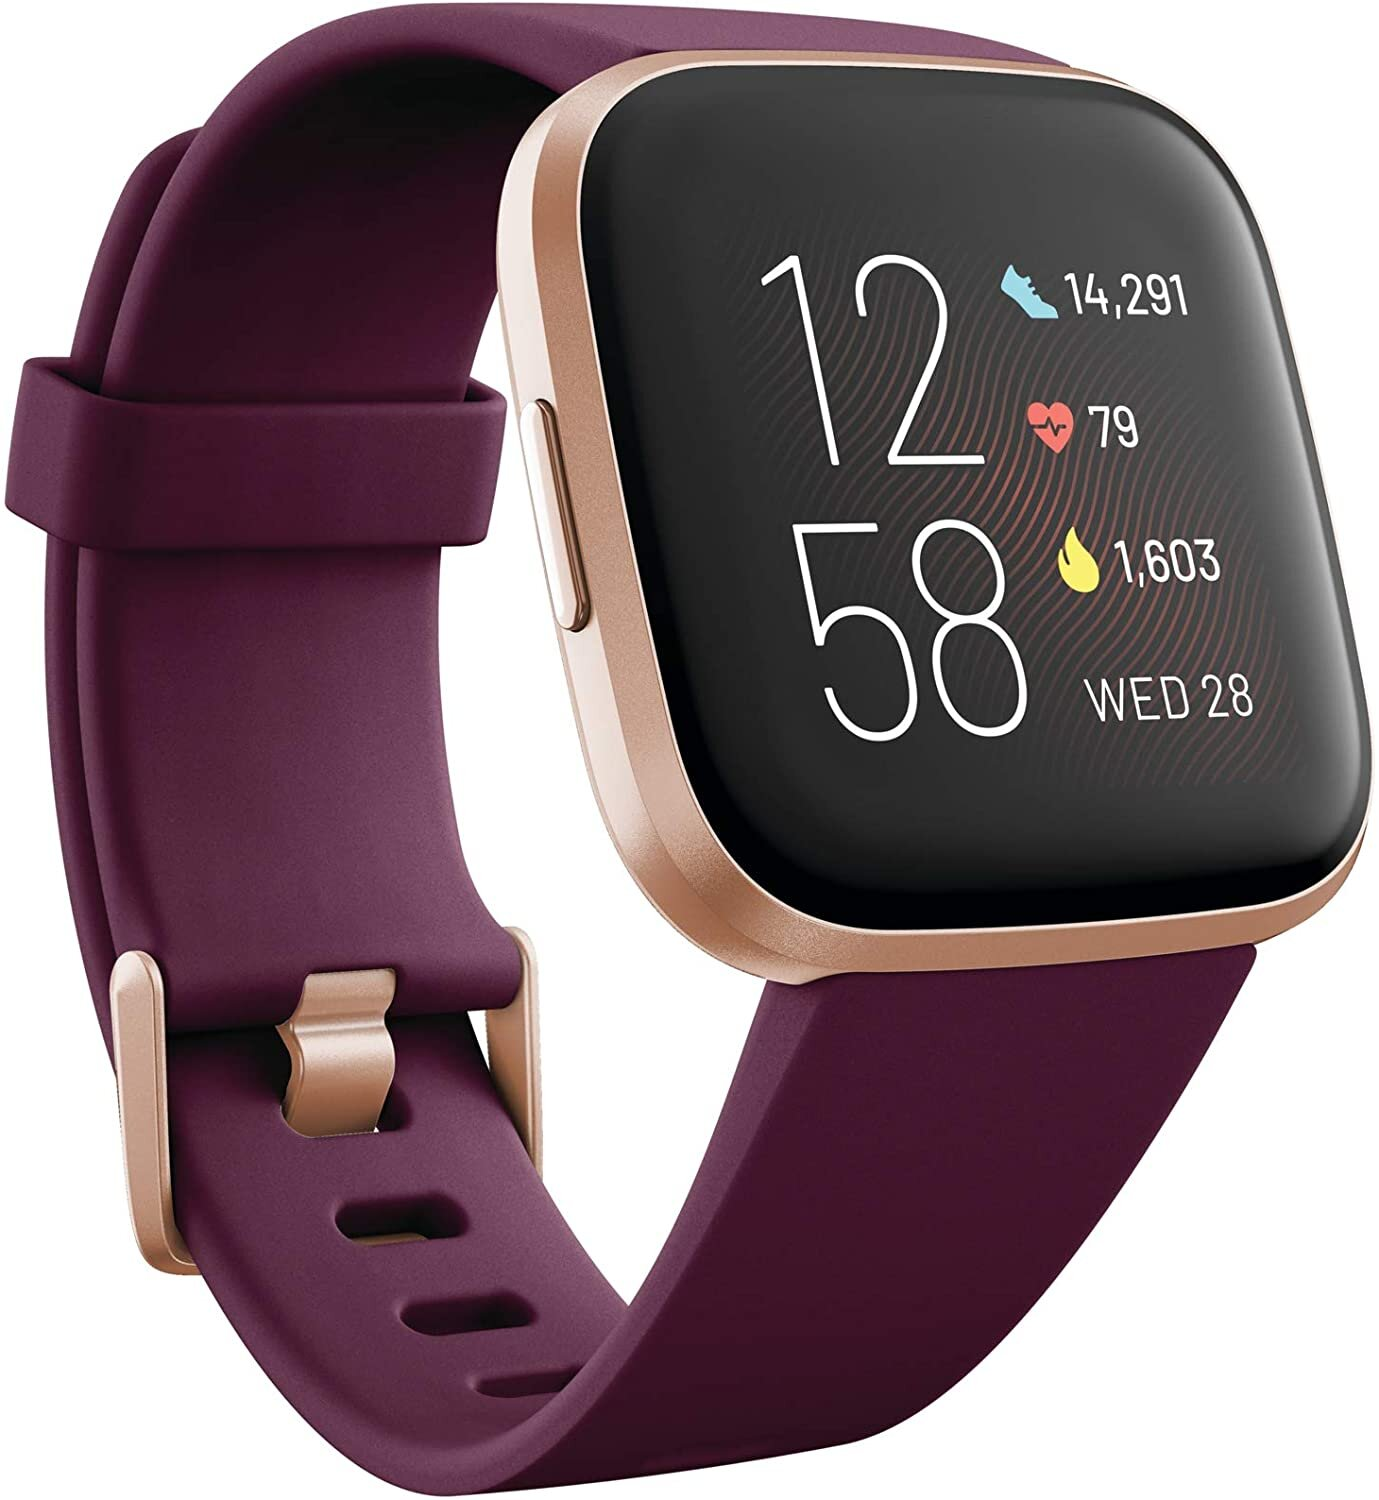 Fitbit Versa 2 Health and Fitness Smartwatch with Heart Rate, Music, Alexa Built-In, Sleep and Swim Tracking, Bordeaux/Copper Rose